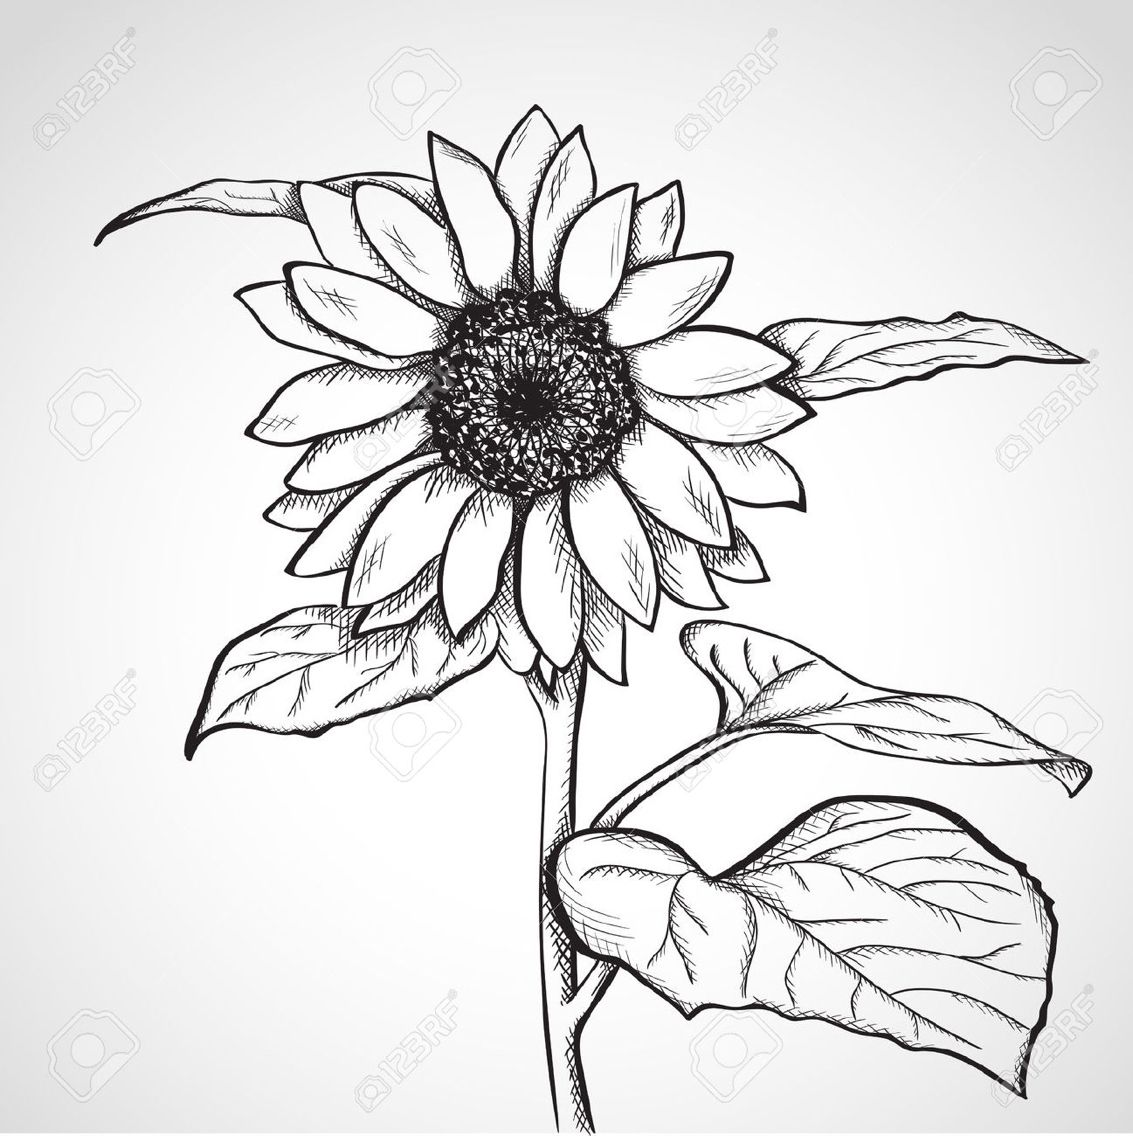 Sunflower sketch black and white tattoo Sunflower